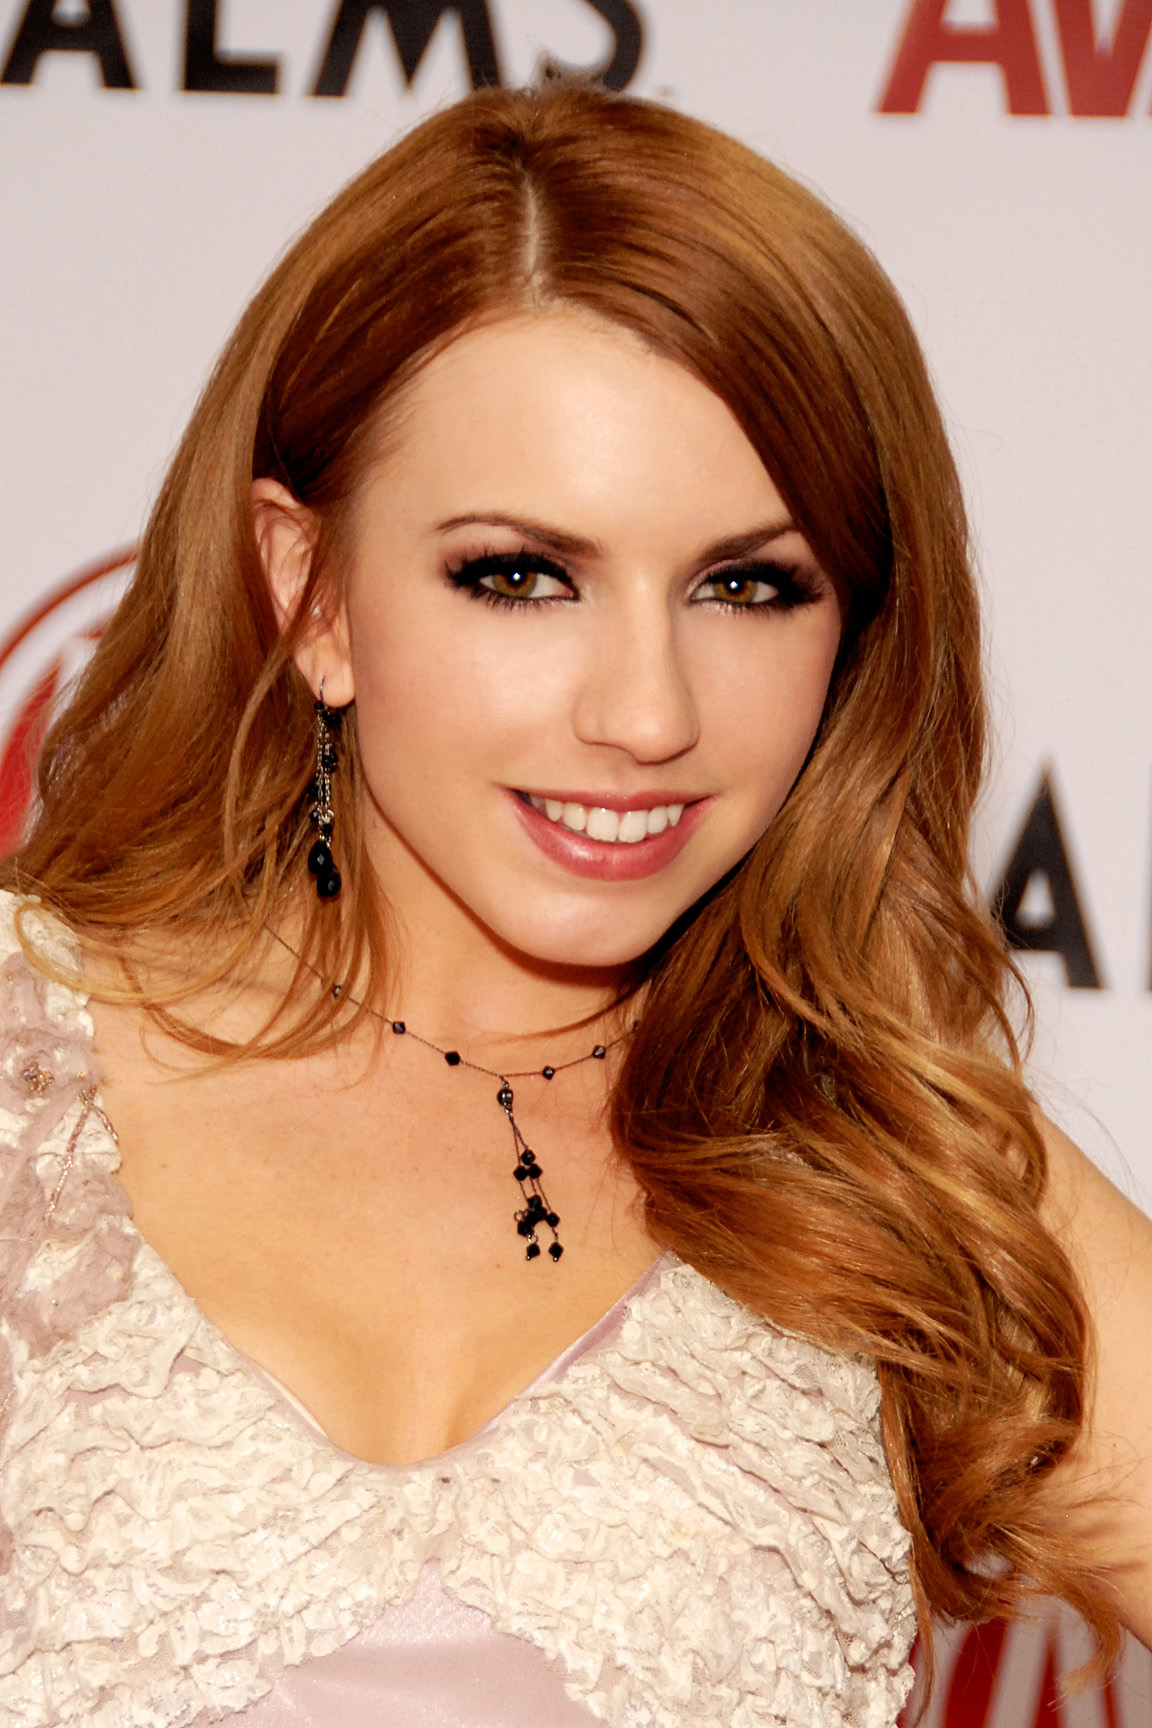 lexi belle wikipedia. Black Bedroom Furniture Sets. Home Design Ideas